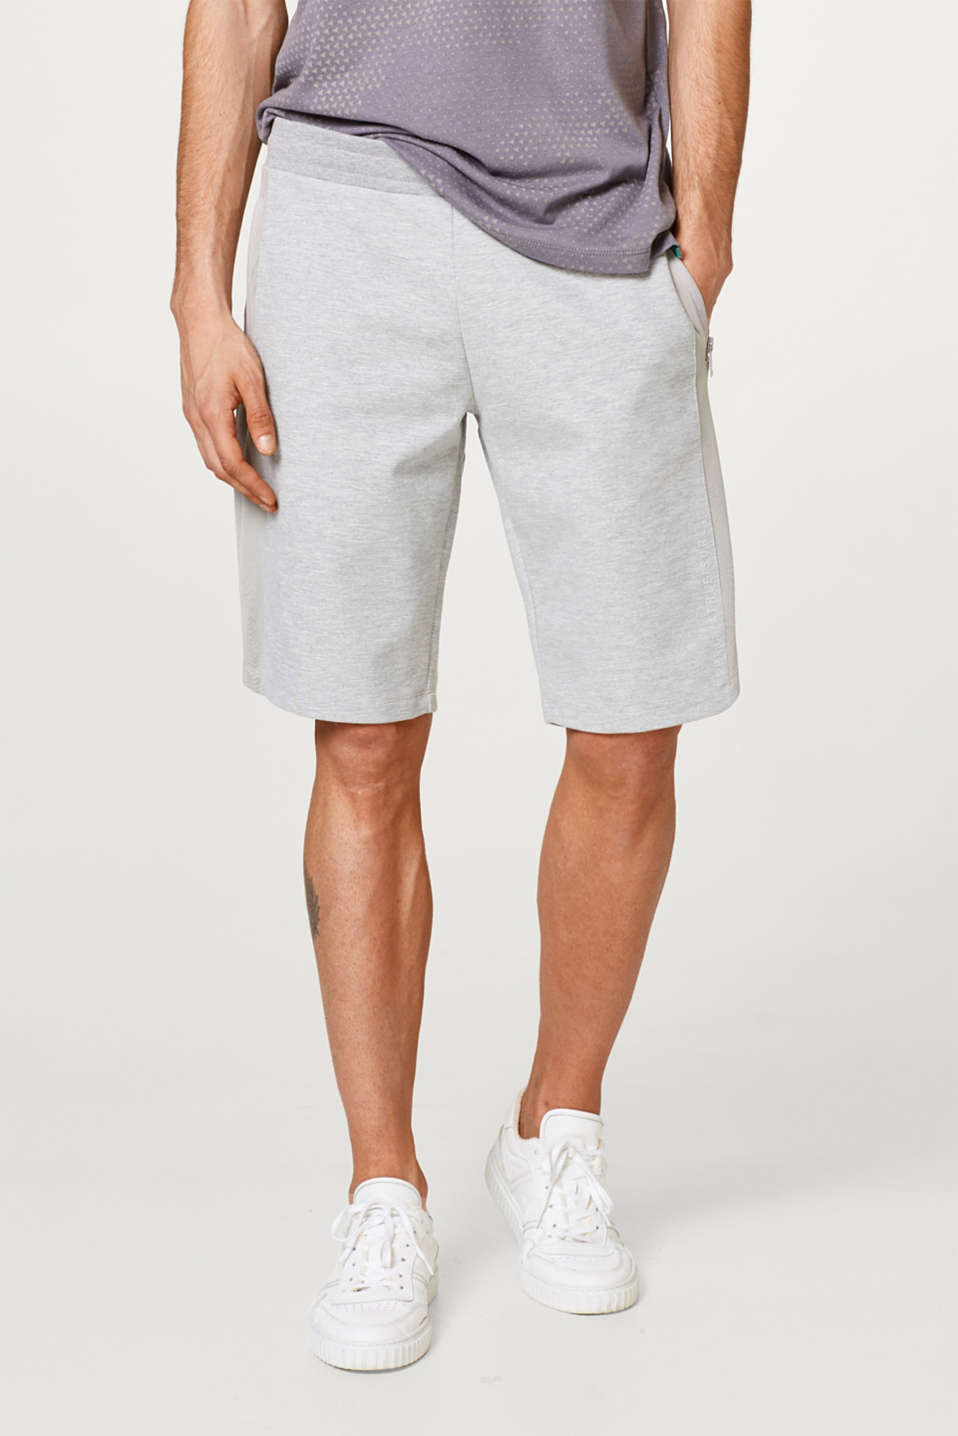 Esprit - Short en molleton chiné à empiècements en mesh